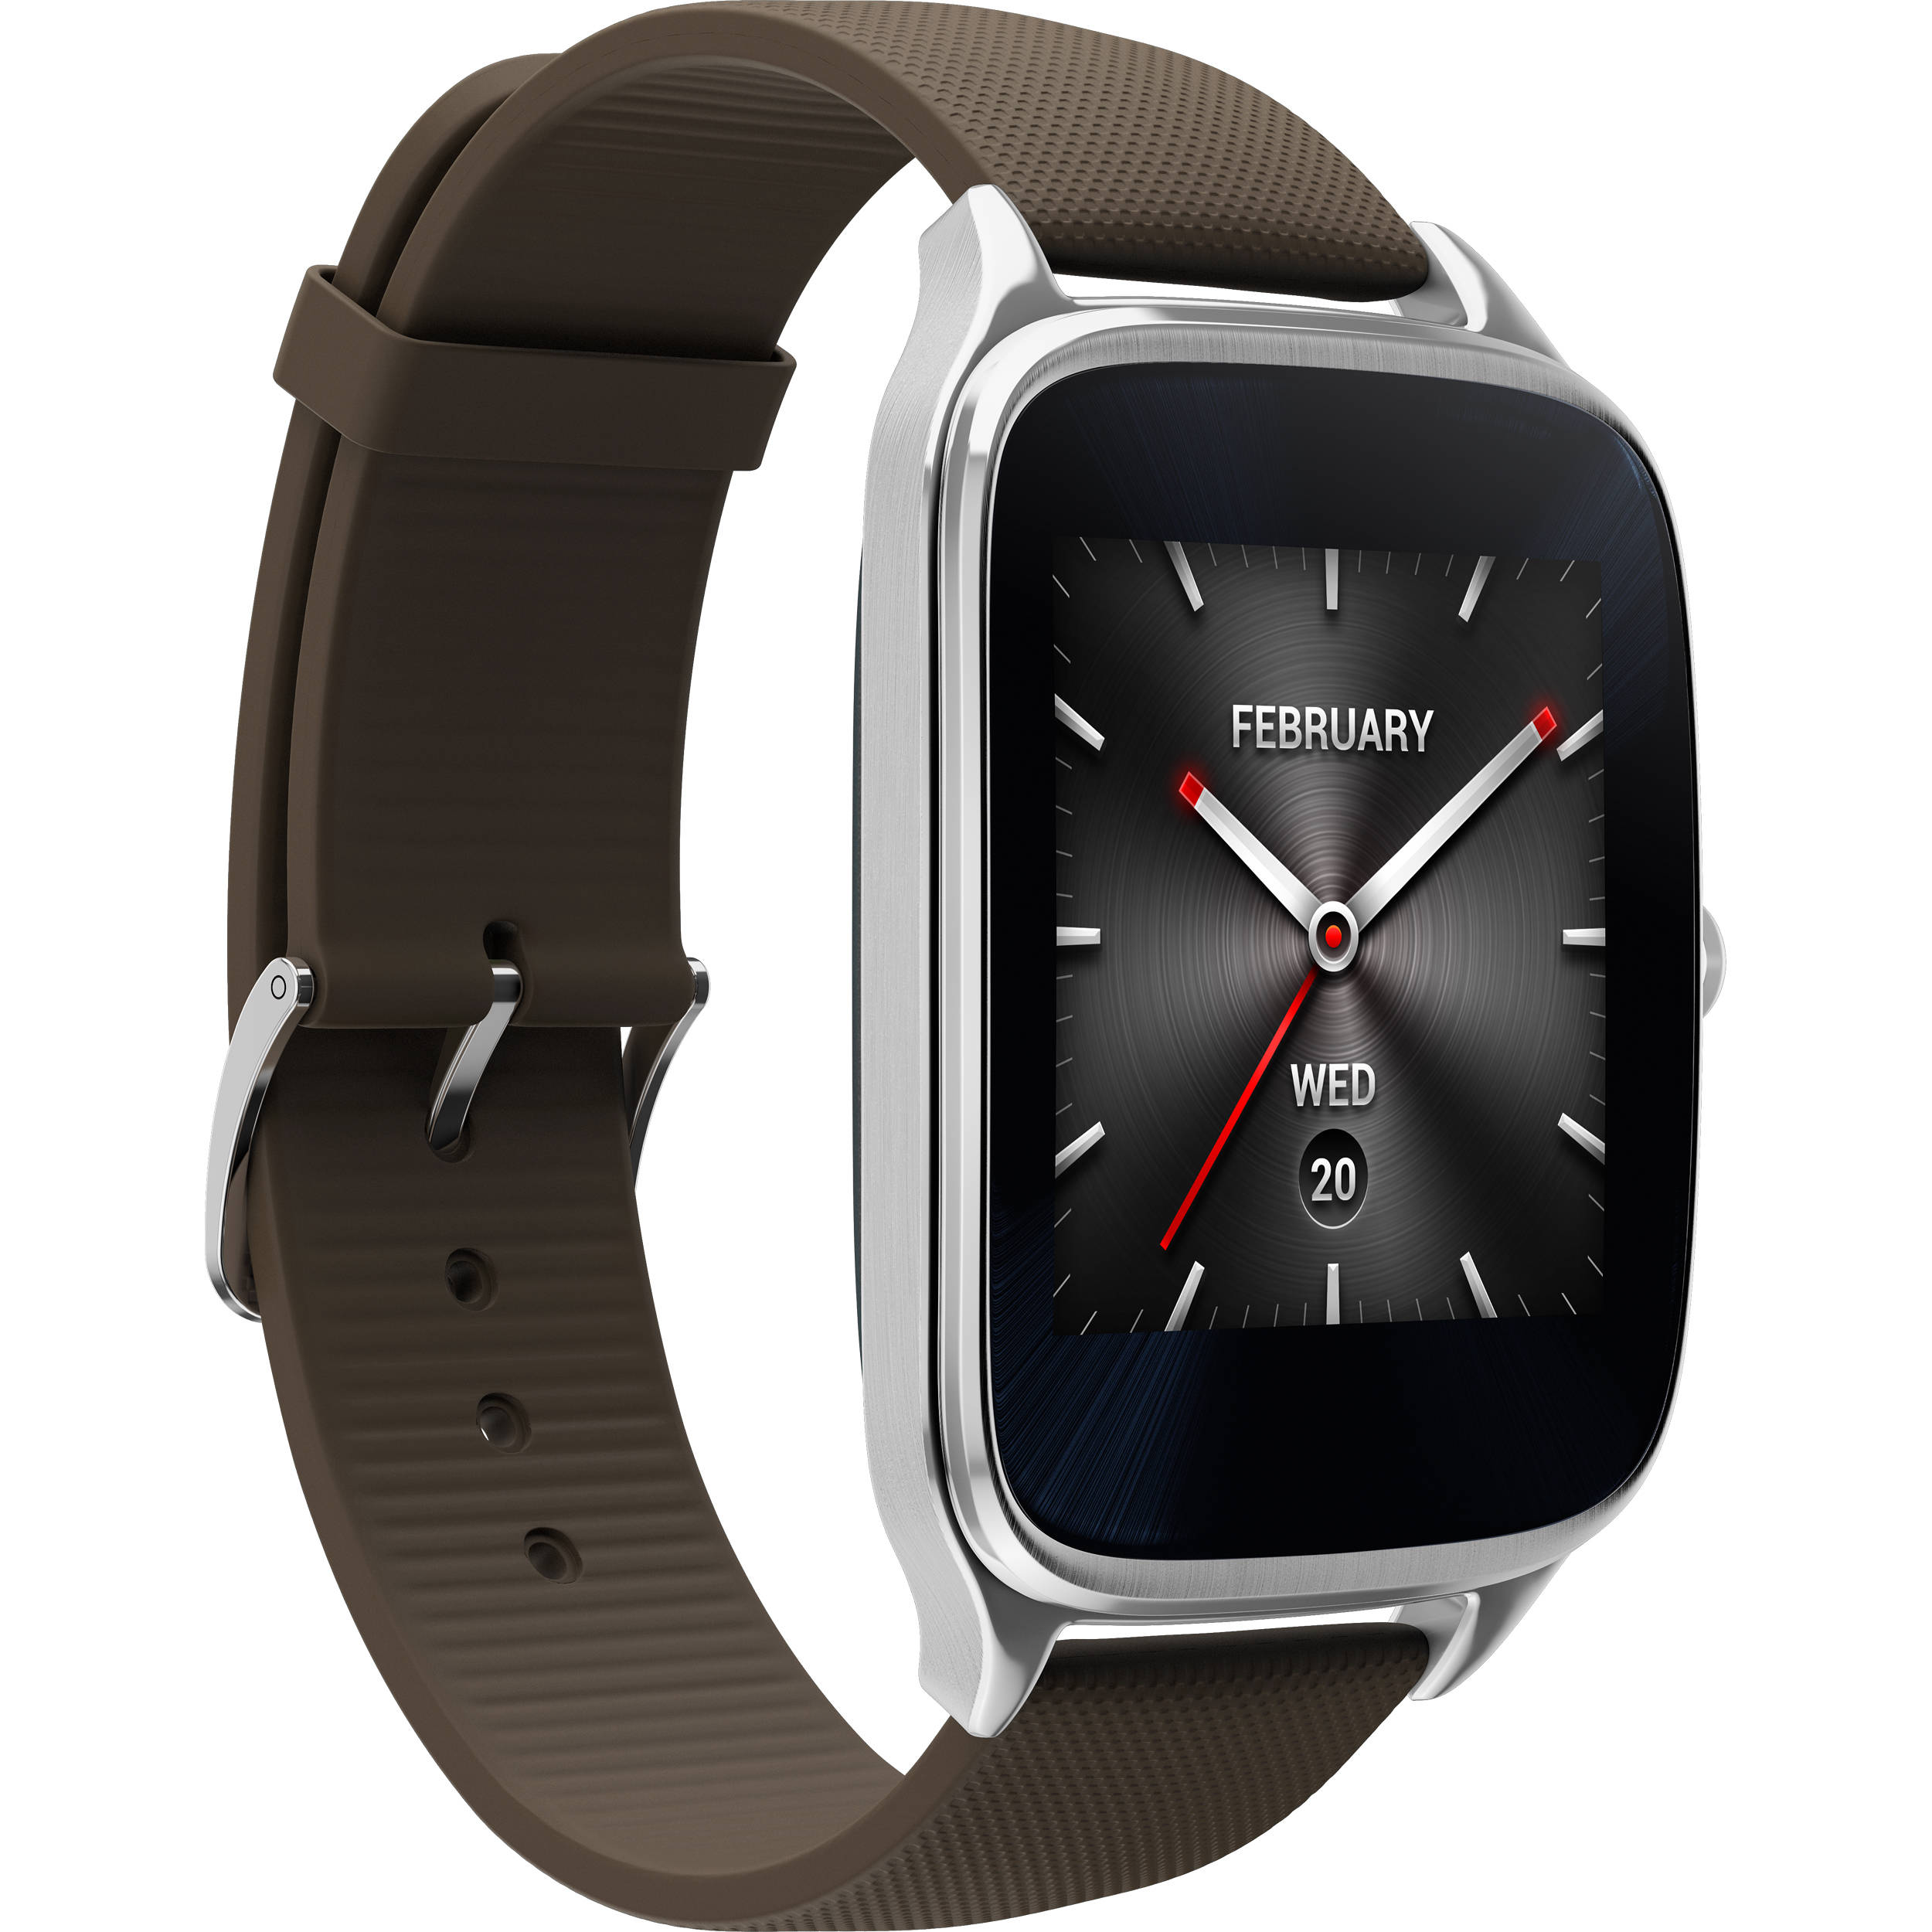 ASUS ZenWatch 2 Android Wear Smartwatch WI501Q-SR-BW B&H Photo